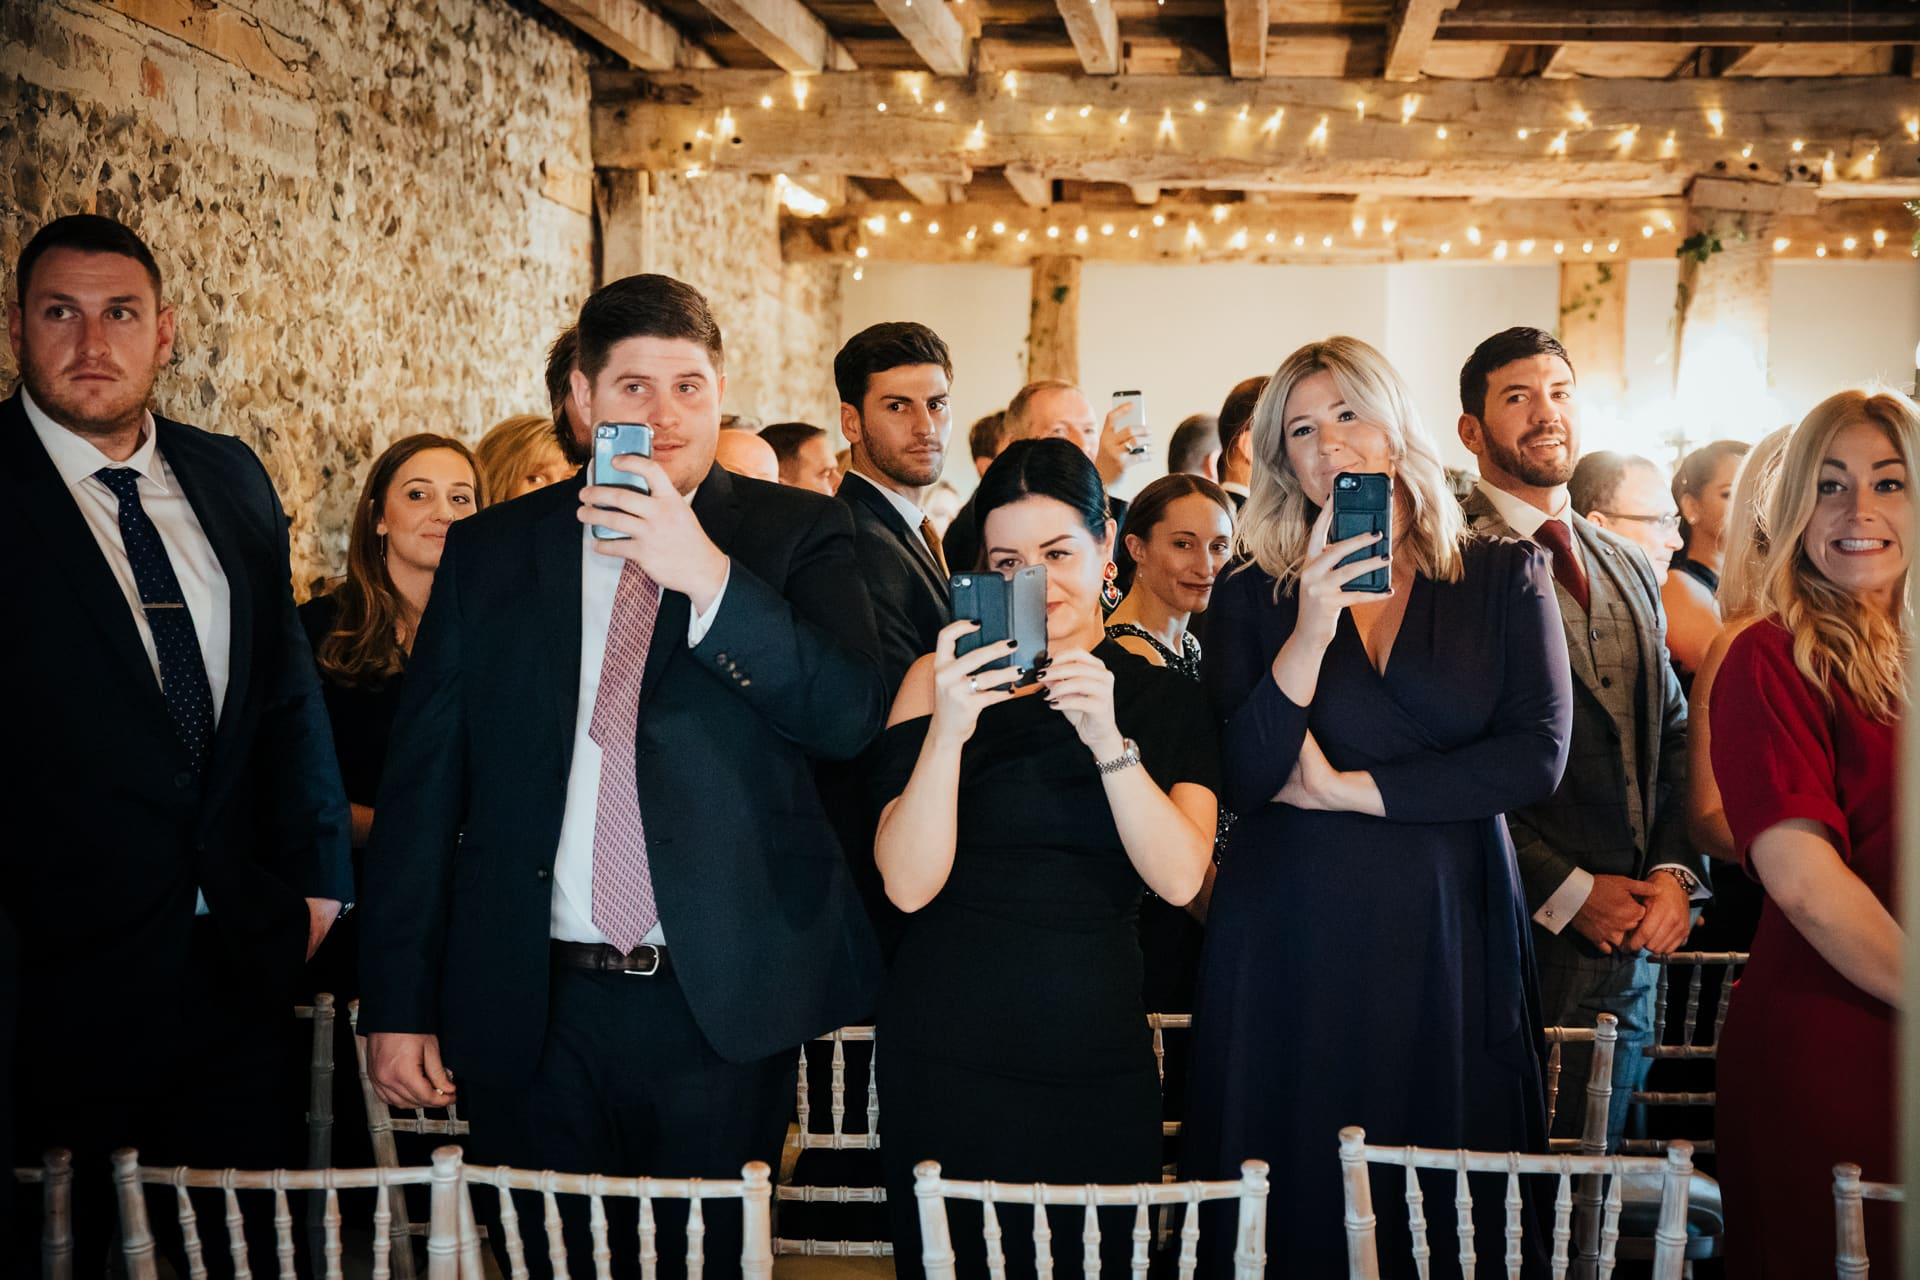 Wedding guests all holding mobile phones to take pictures of the Bride as she enters